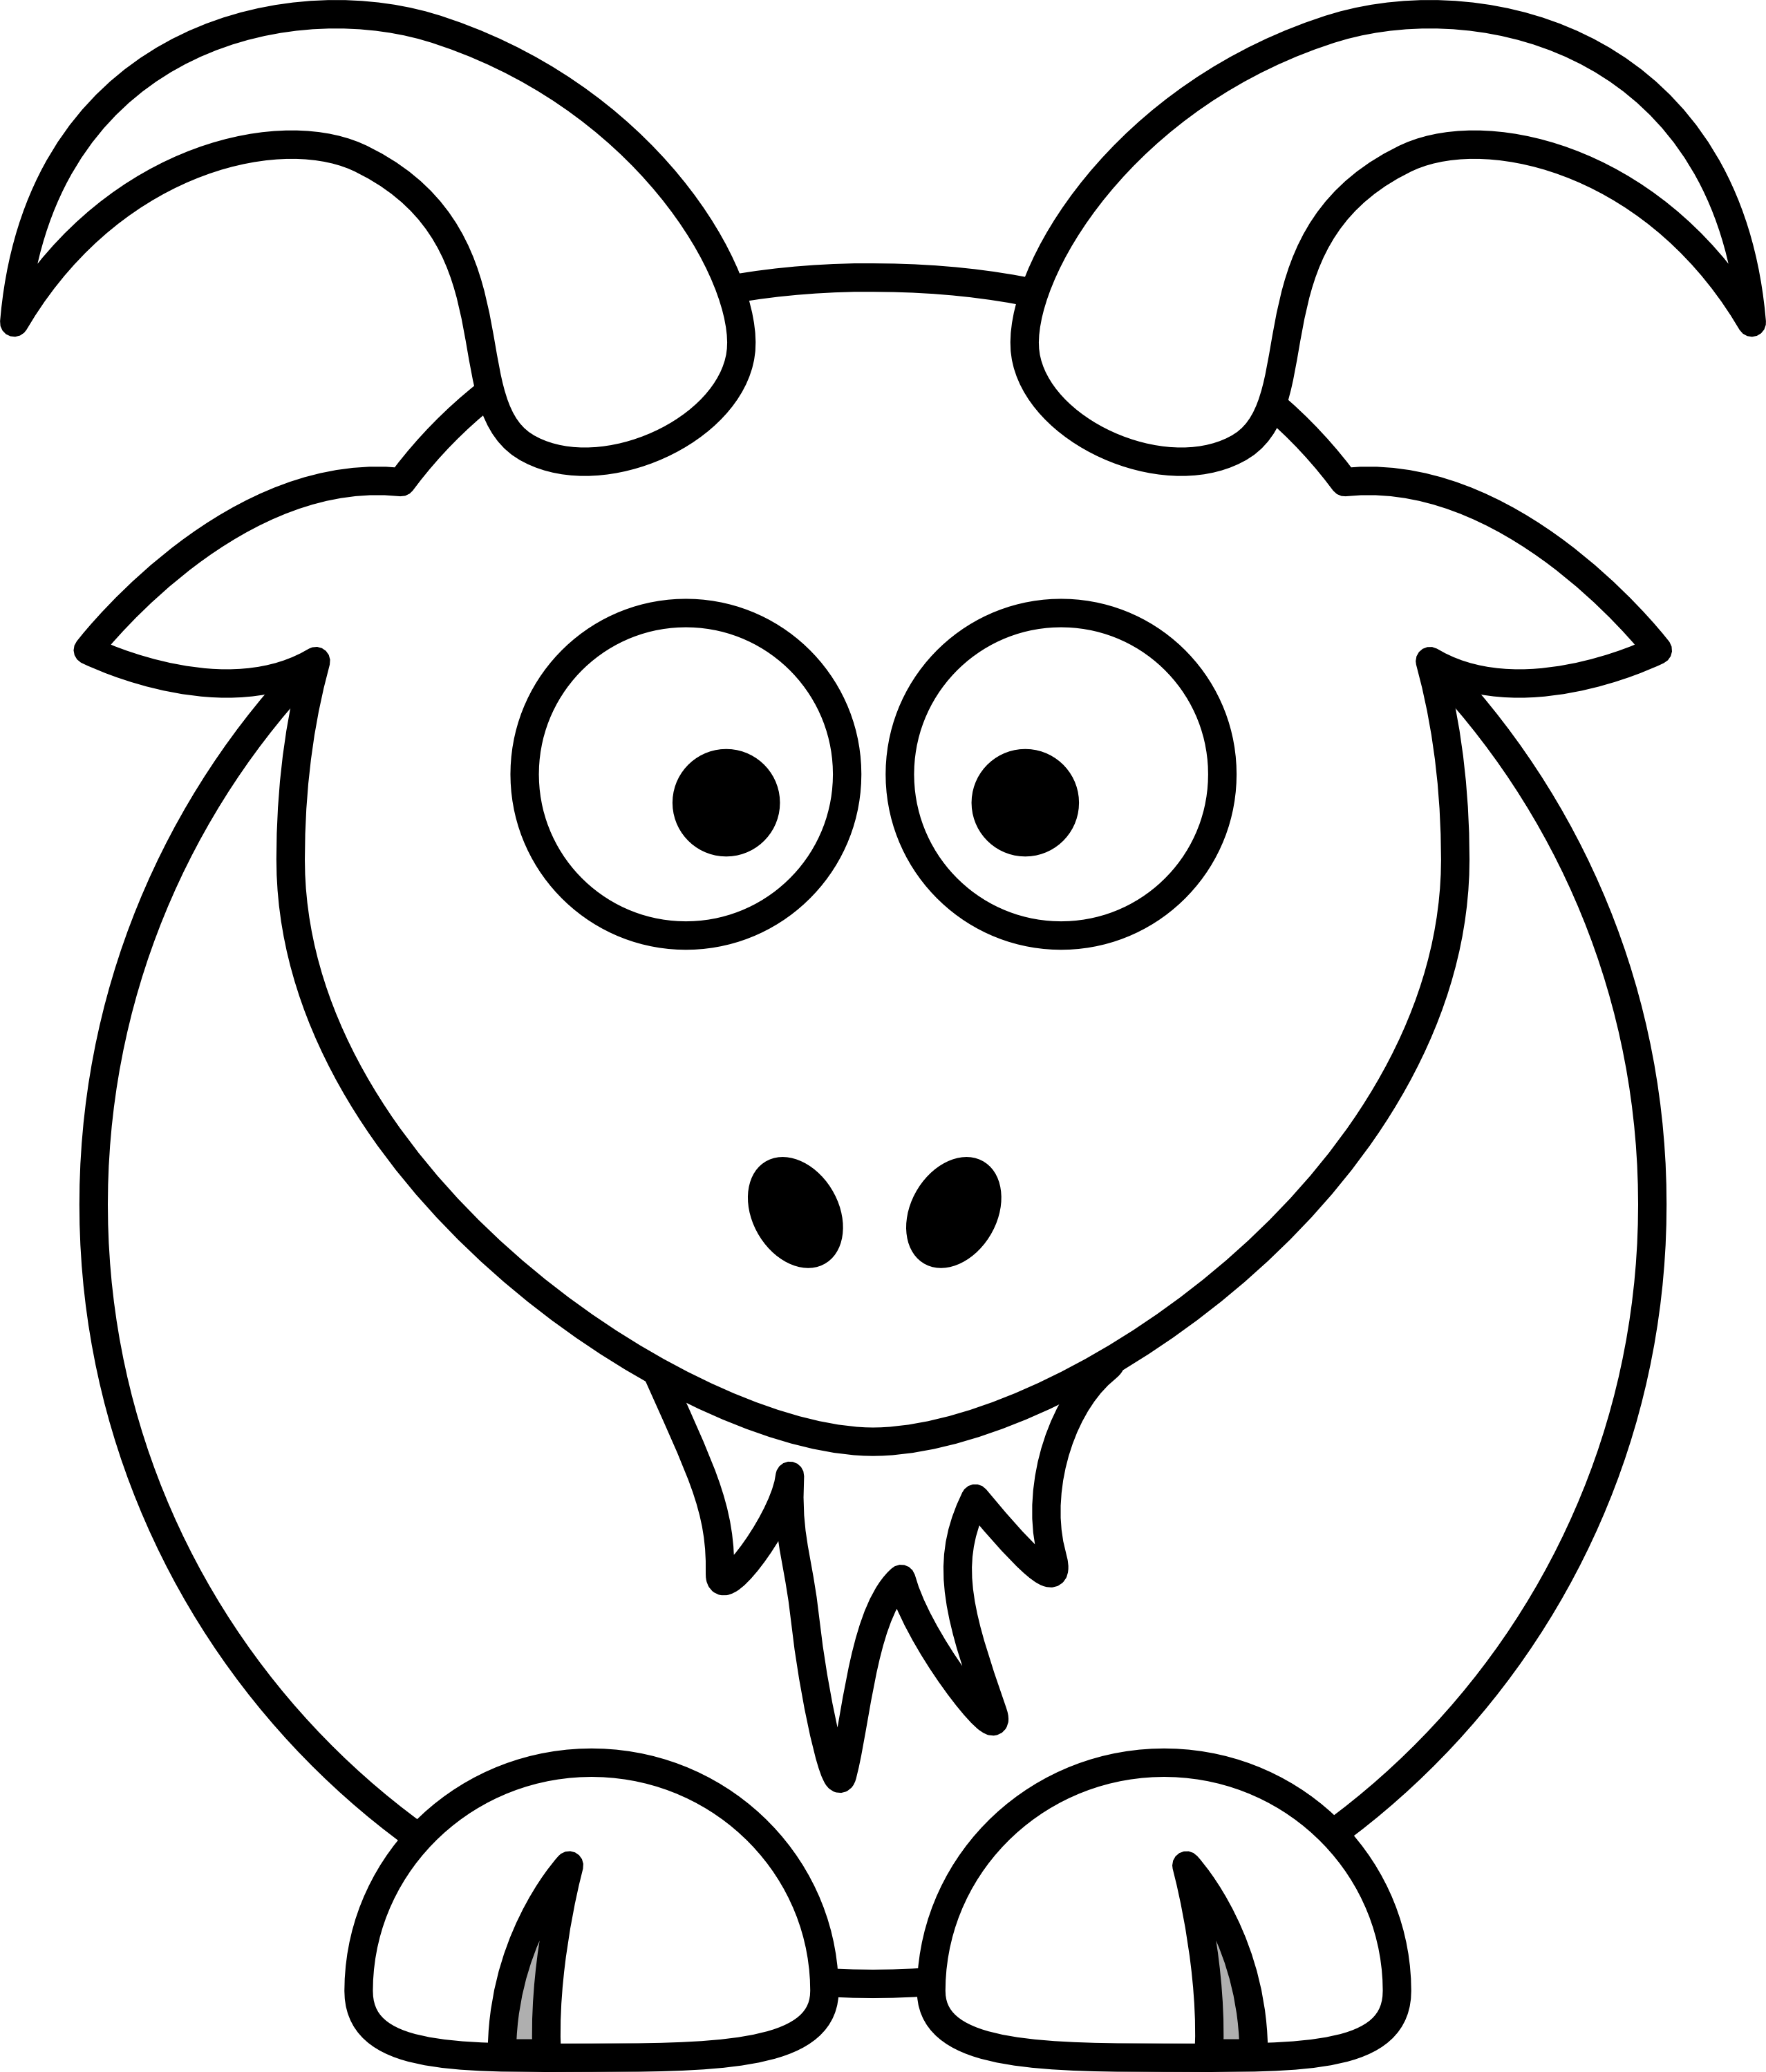 numbers%20clipart%20black%20and%20white